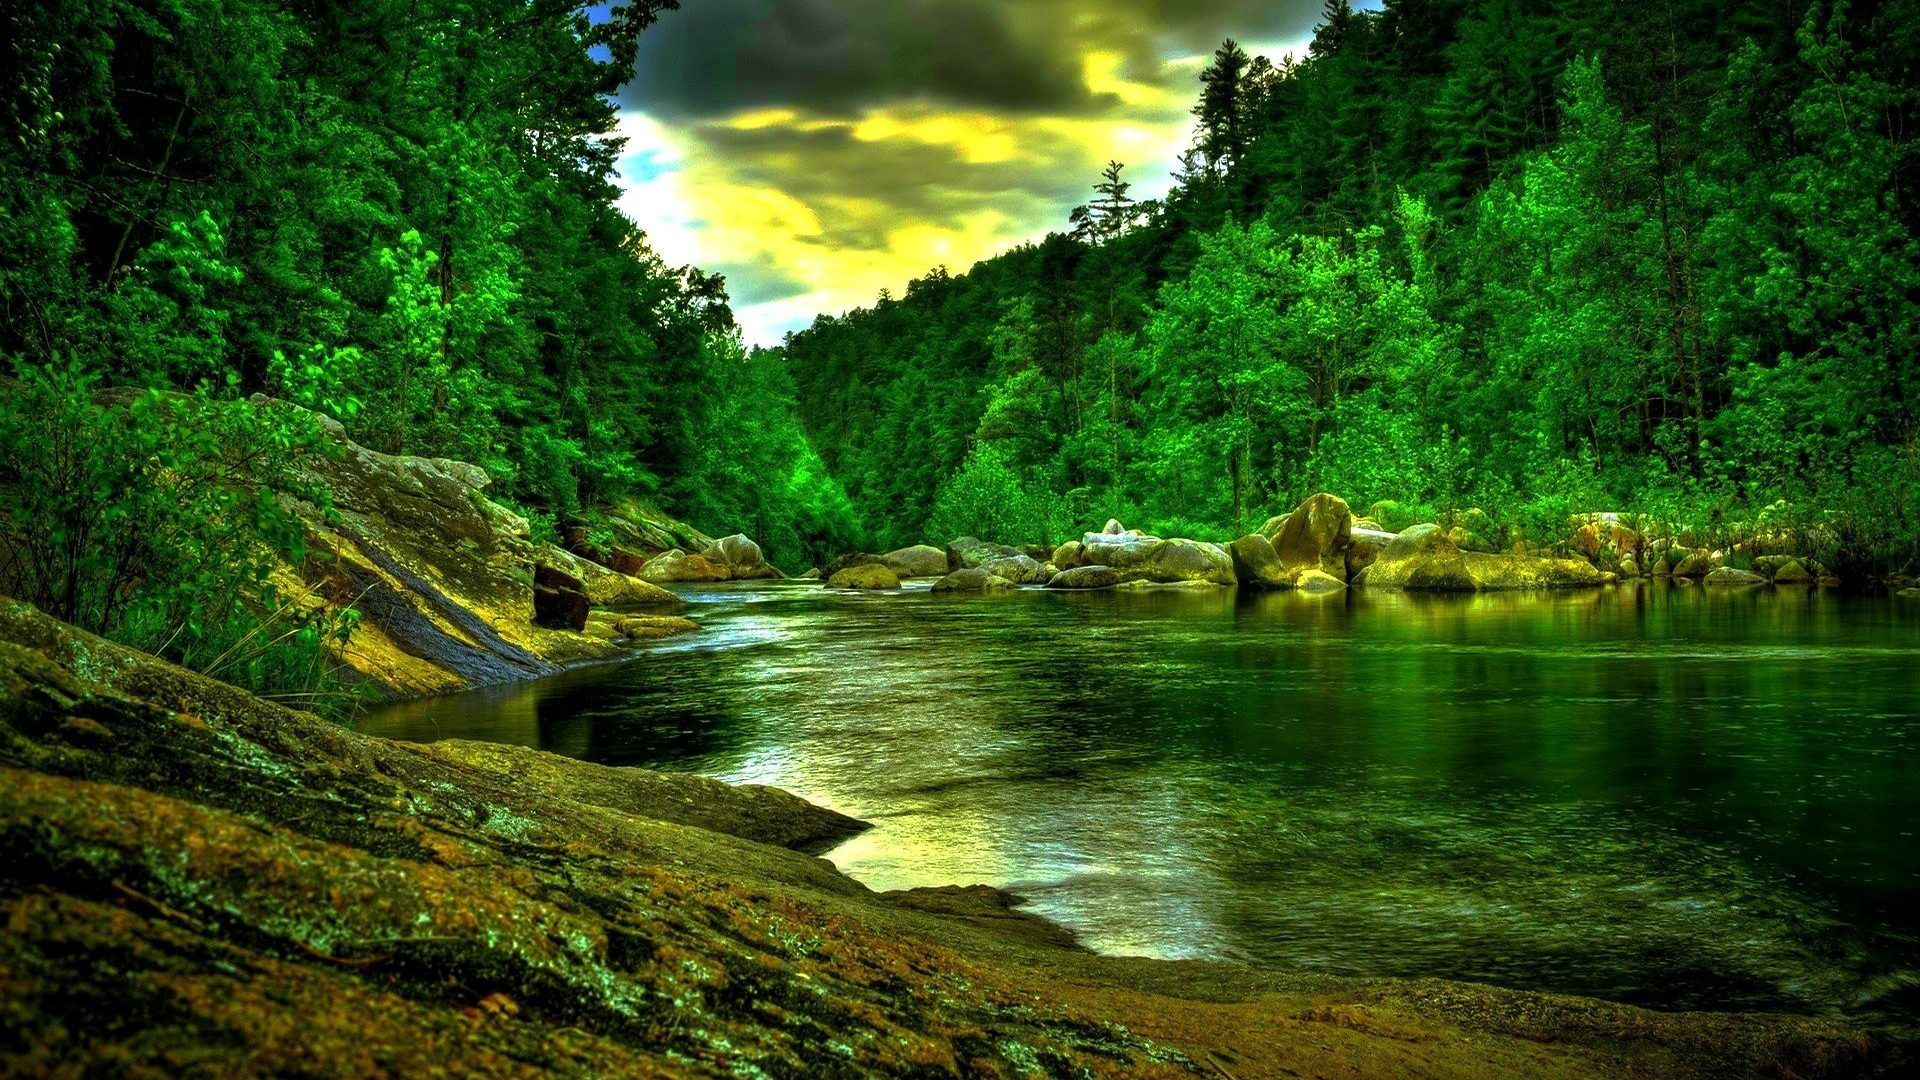 Nature amazon pictures wallpapers desktop wallpaper hd full screen nature forest background - Amazon wallpaper hd ...